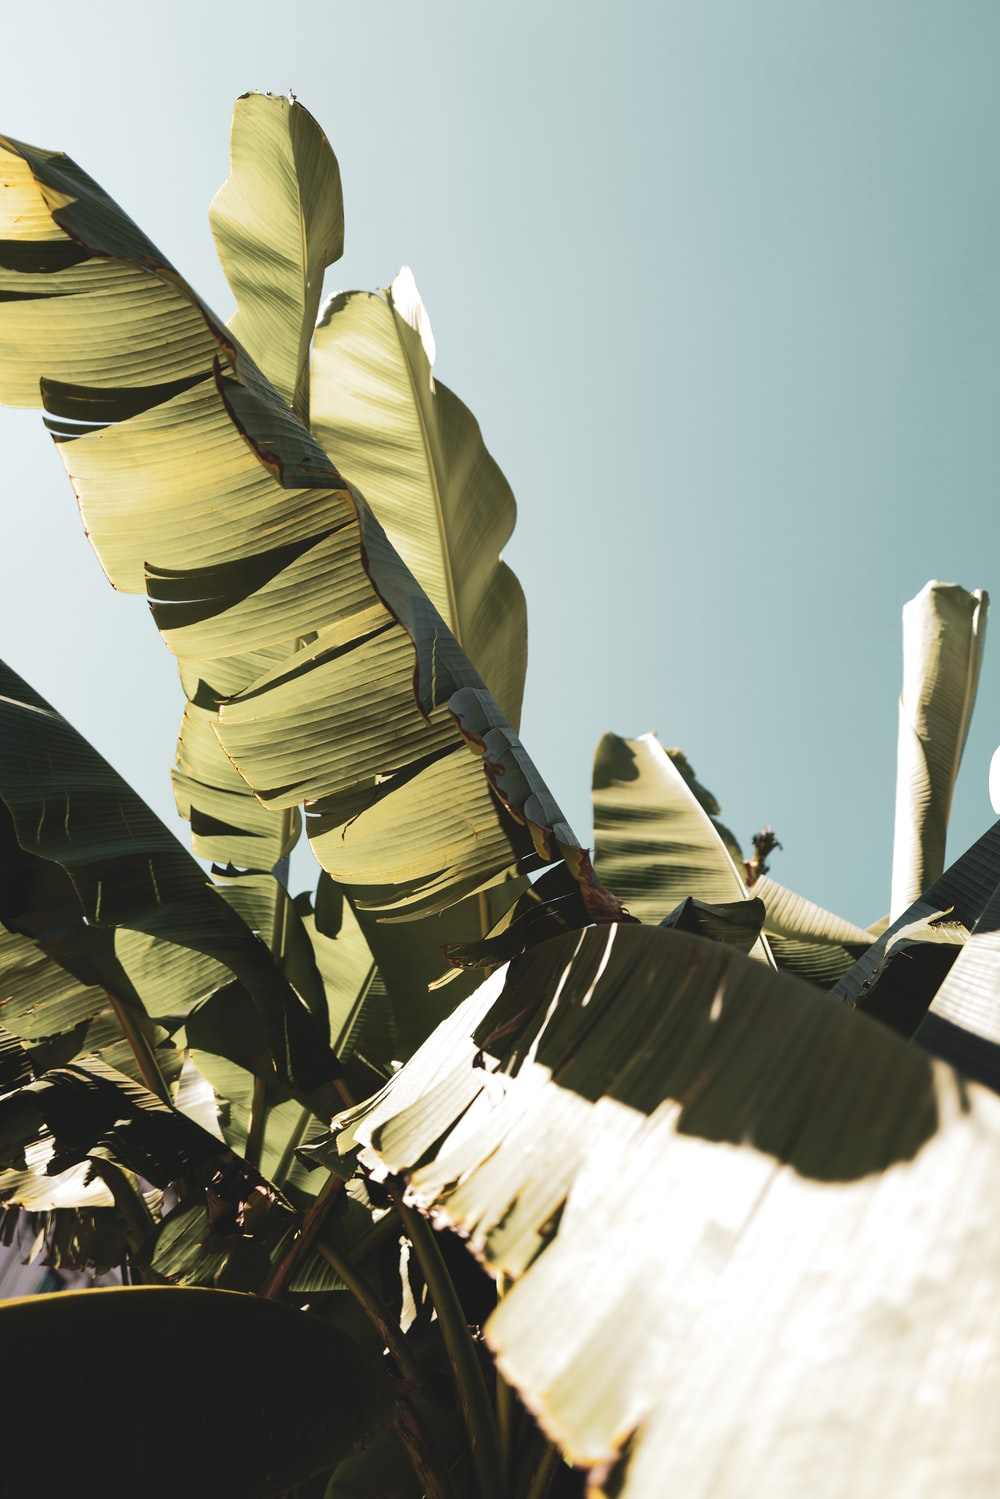 green banana leaves on brown wooden stick